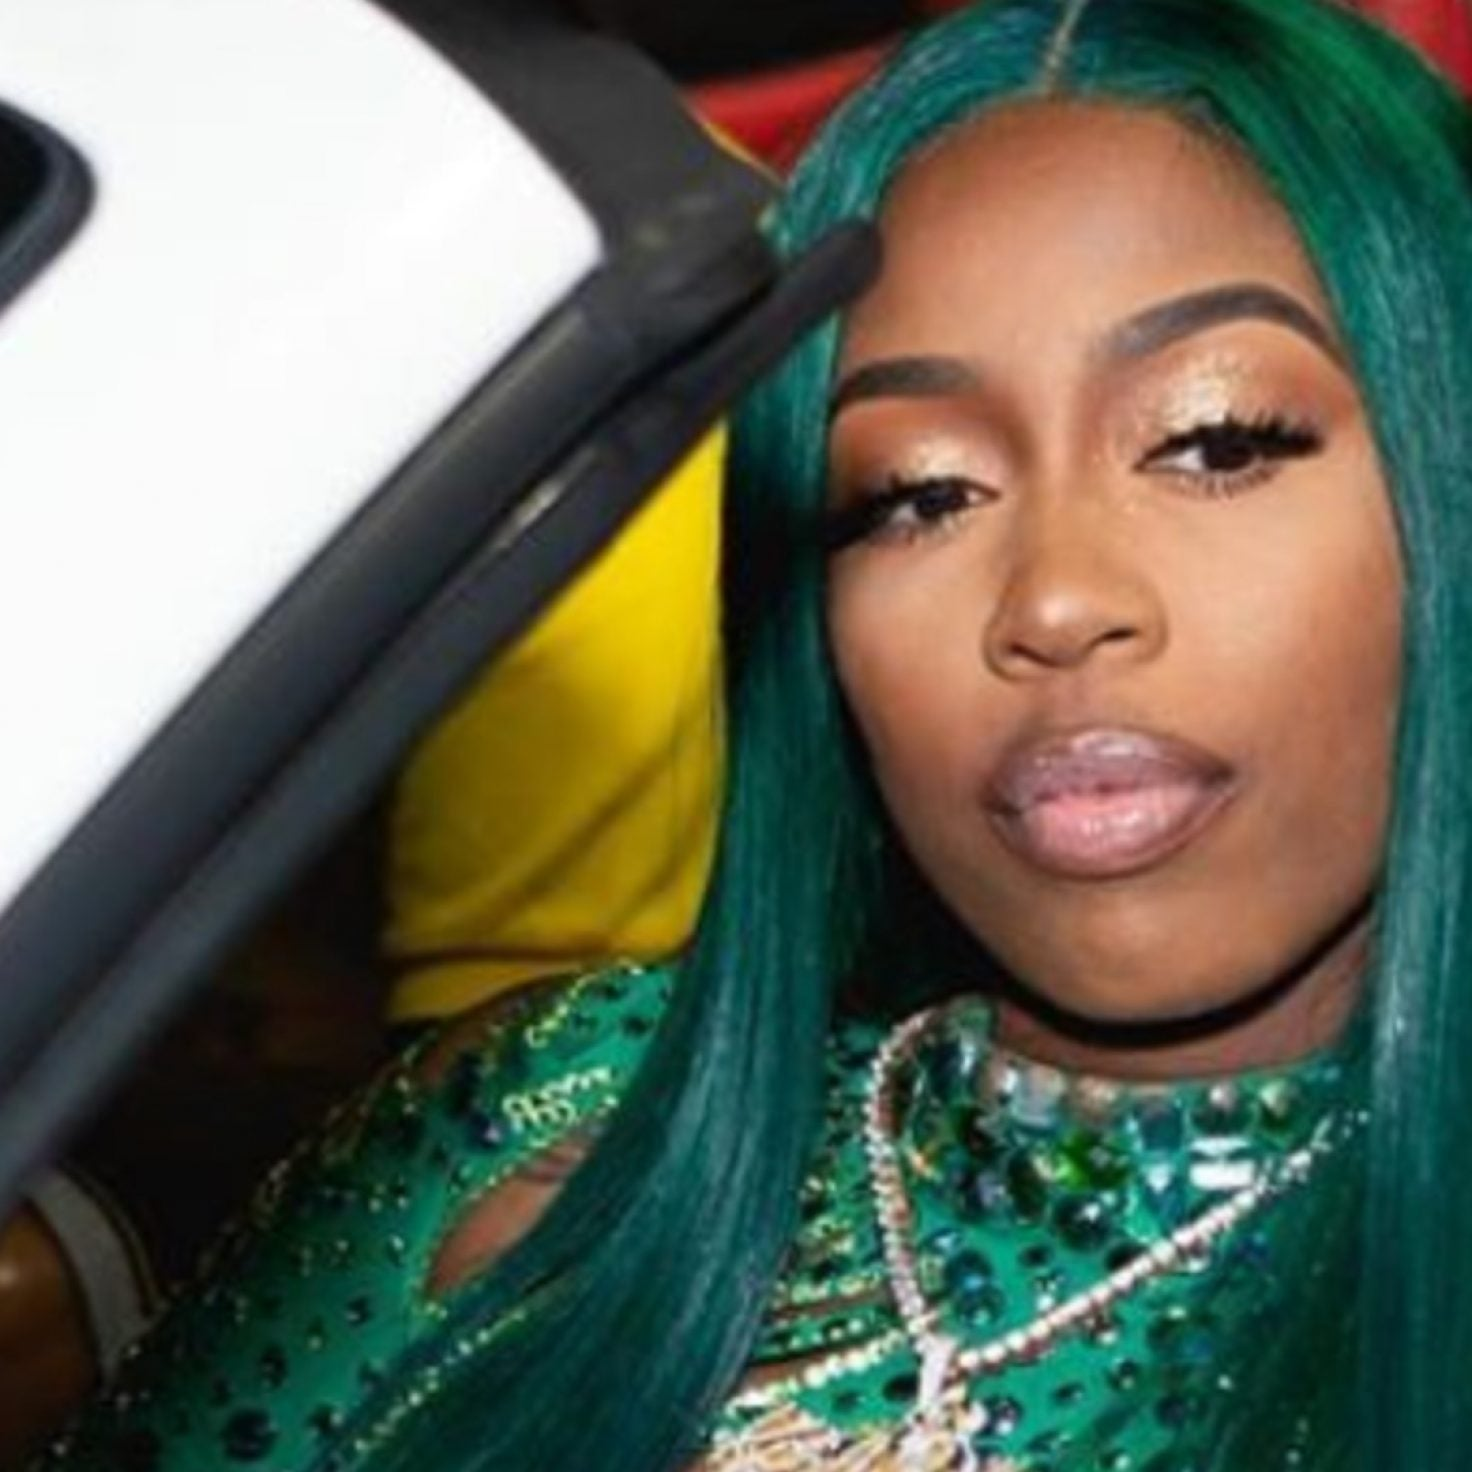 Is Green The New It Hair Color?